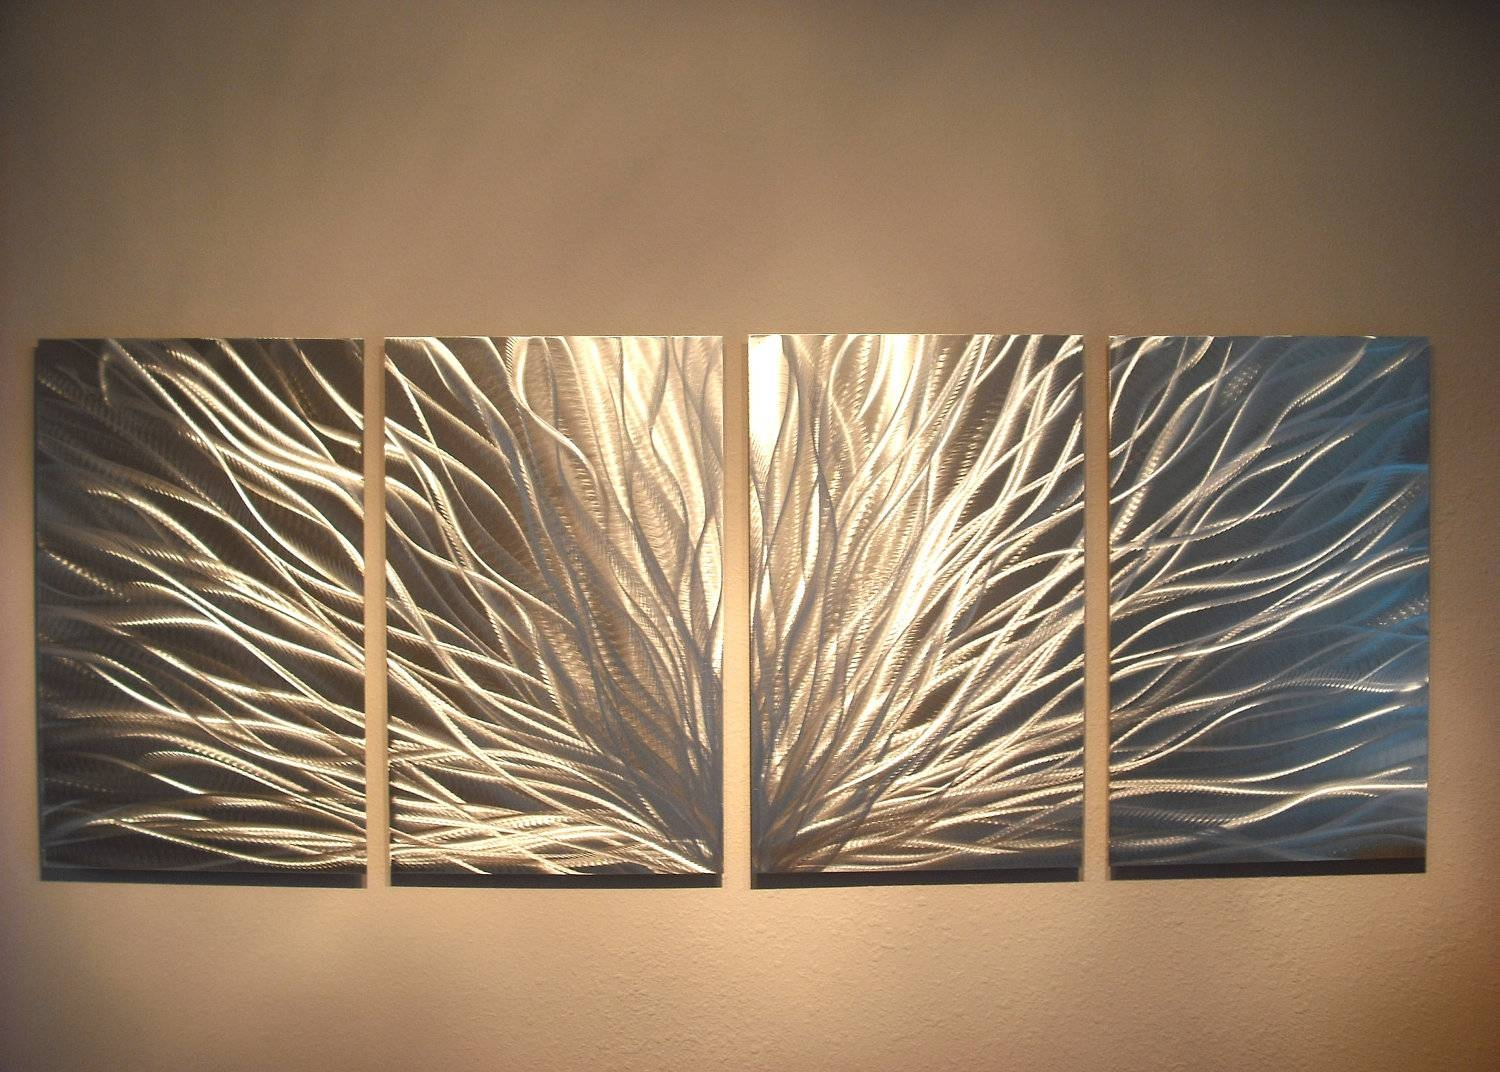 Radiance – Abstract Metal Wall Art Contemporary Modern Decor Pertaining To Most Recent Big Metal Wall Art (View 13 of 15)